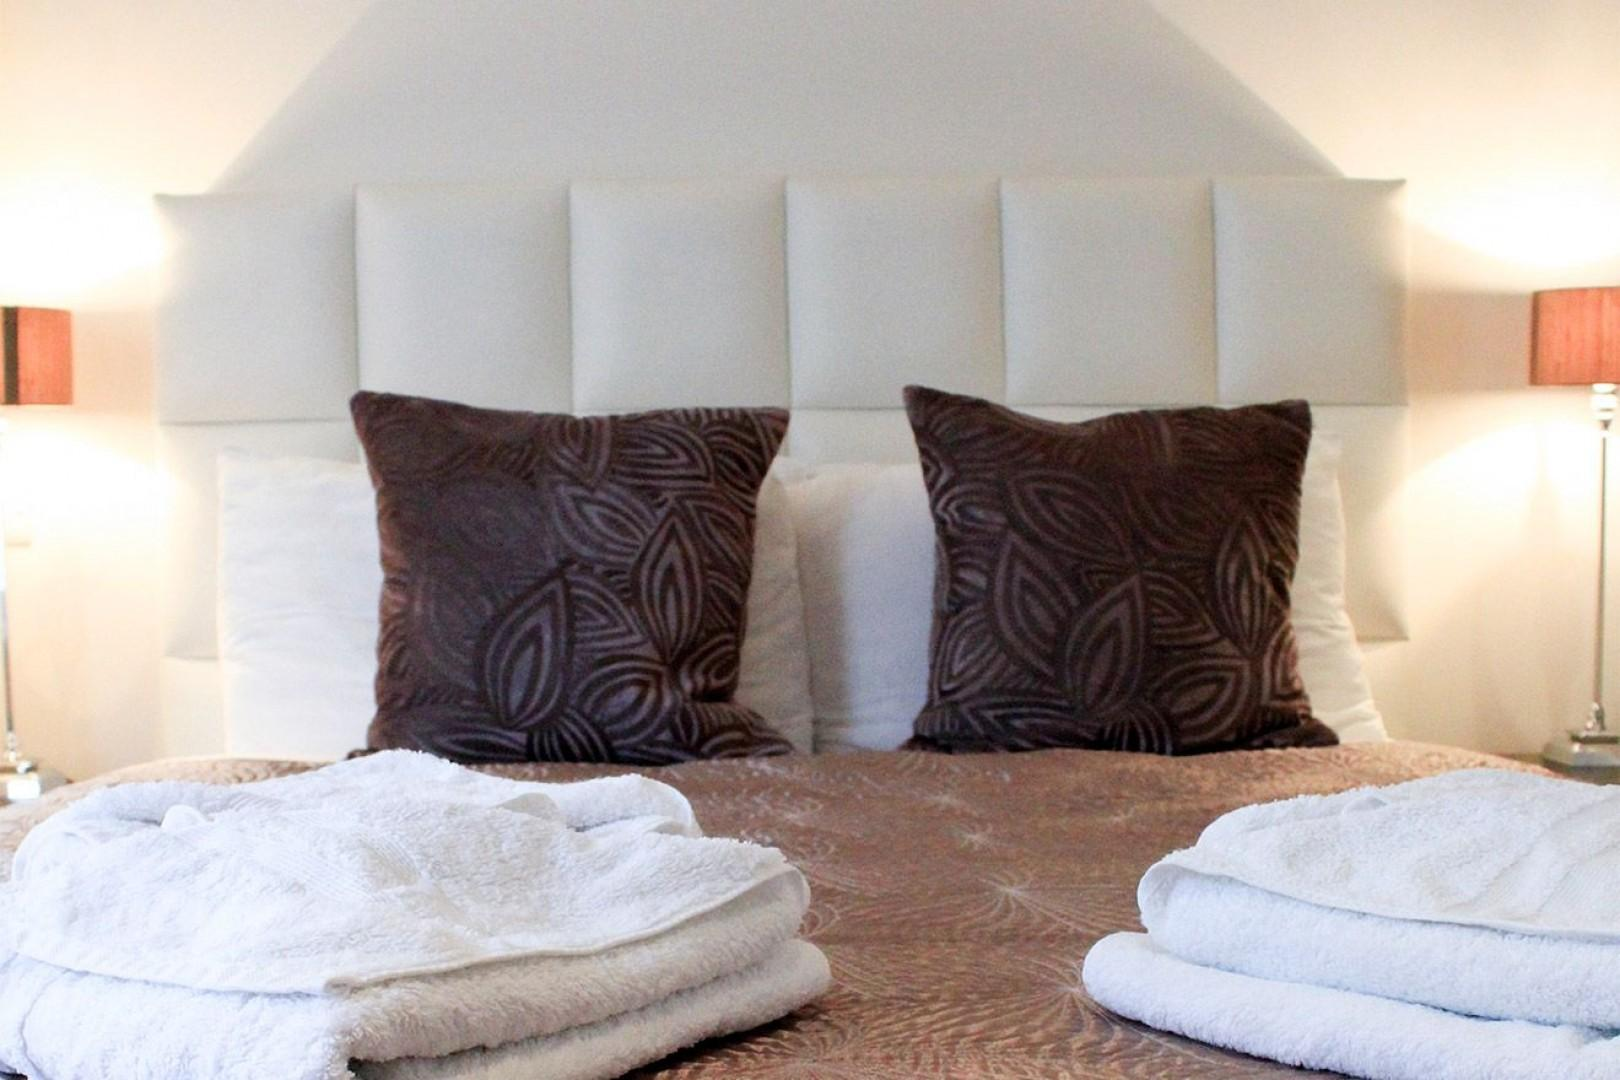 Fall into this cozy bed!